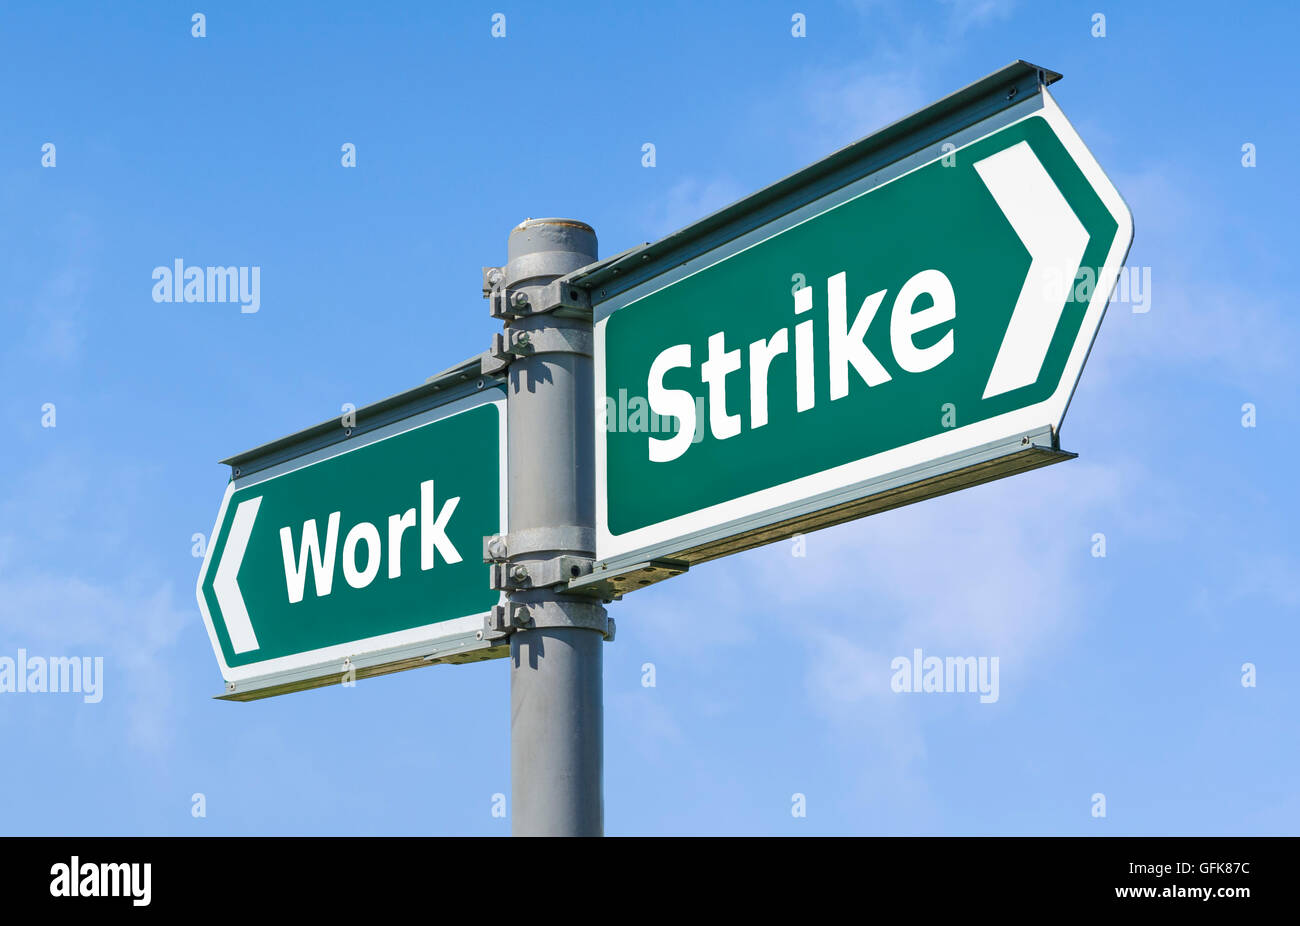 Strike or Work direction sign. - Stock Image